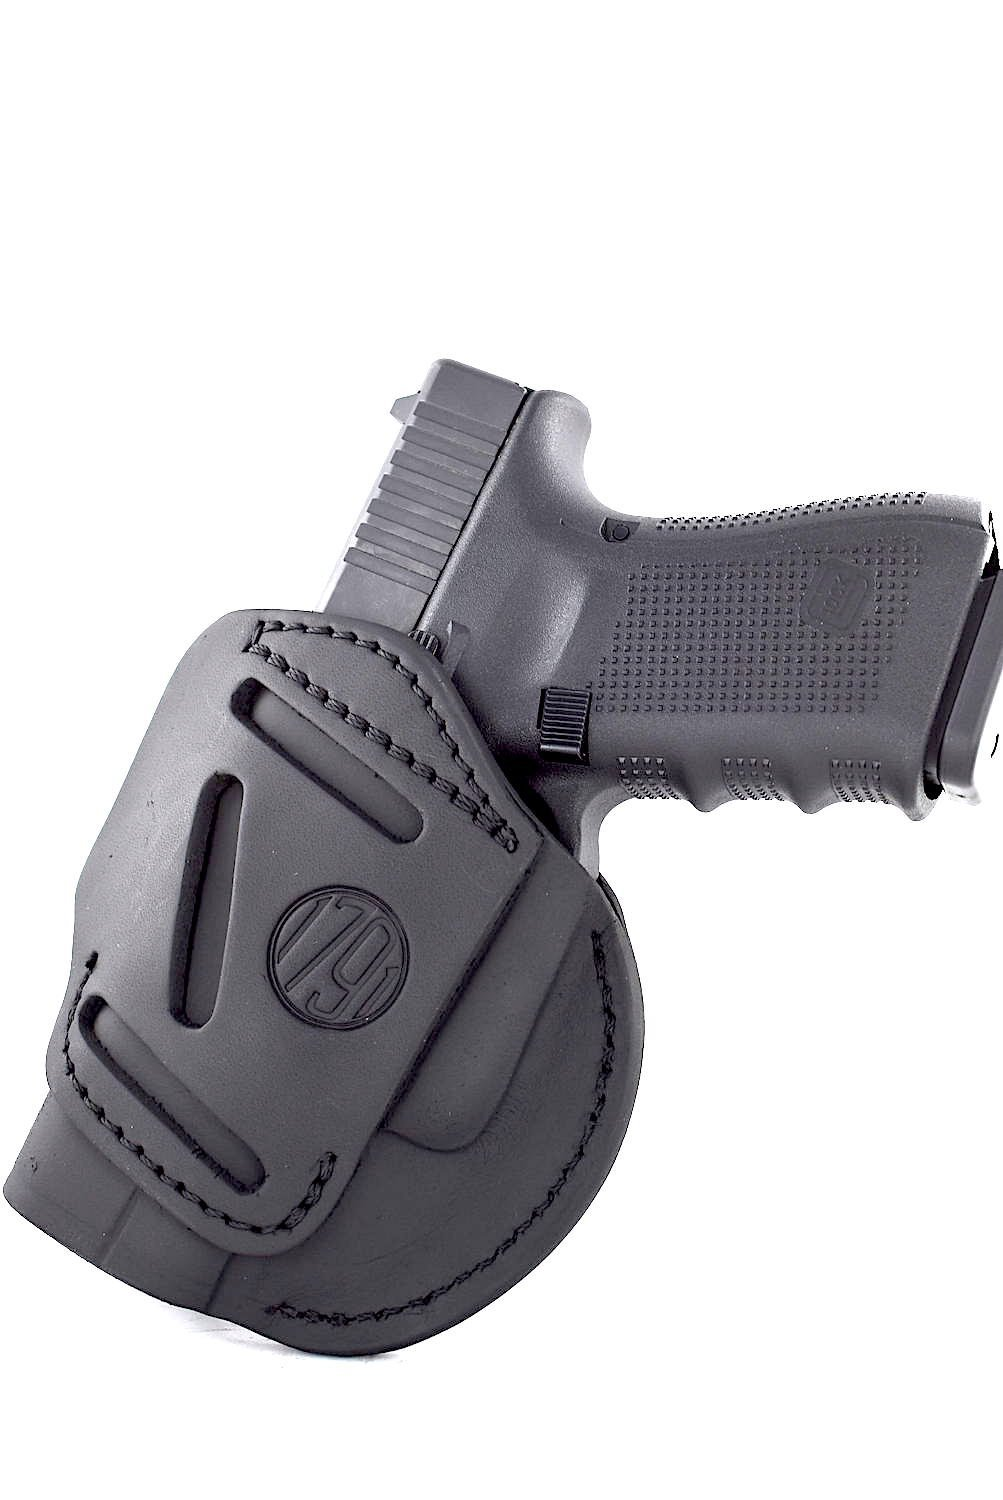 1791 GunLeather 4-WAY Glock 19 Holster - OWB and IWB CCW Holster - Right Handed Leather Gun Holster - Fits Glock 19, 23, 26, 27, 29, 32, 33 (4 WAY SIZE 3)